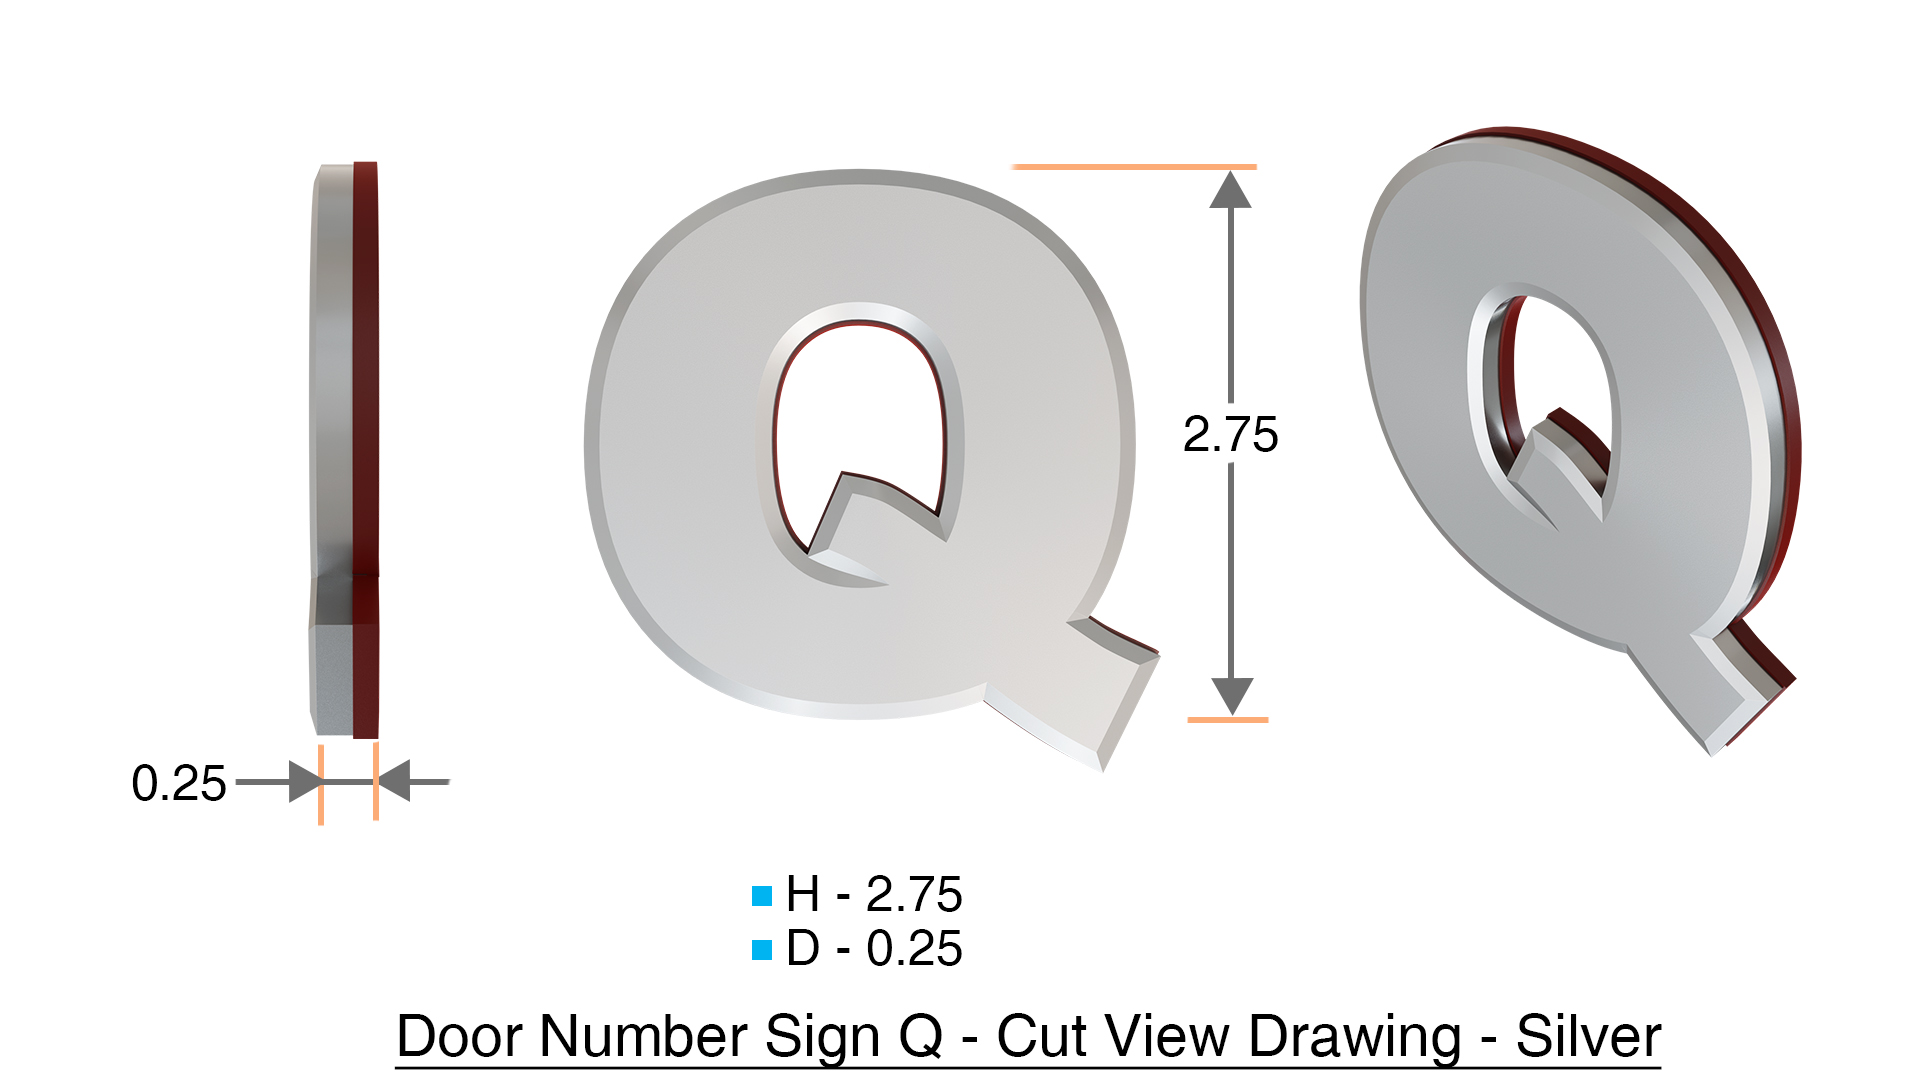 in nyc use/post sign to inform tenants/owners/guests/officers of #q  facility in building with proper hpd designation and aluminum signs